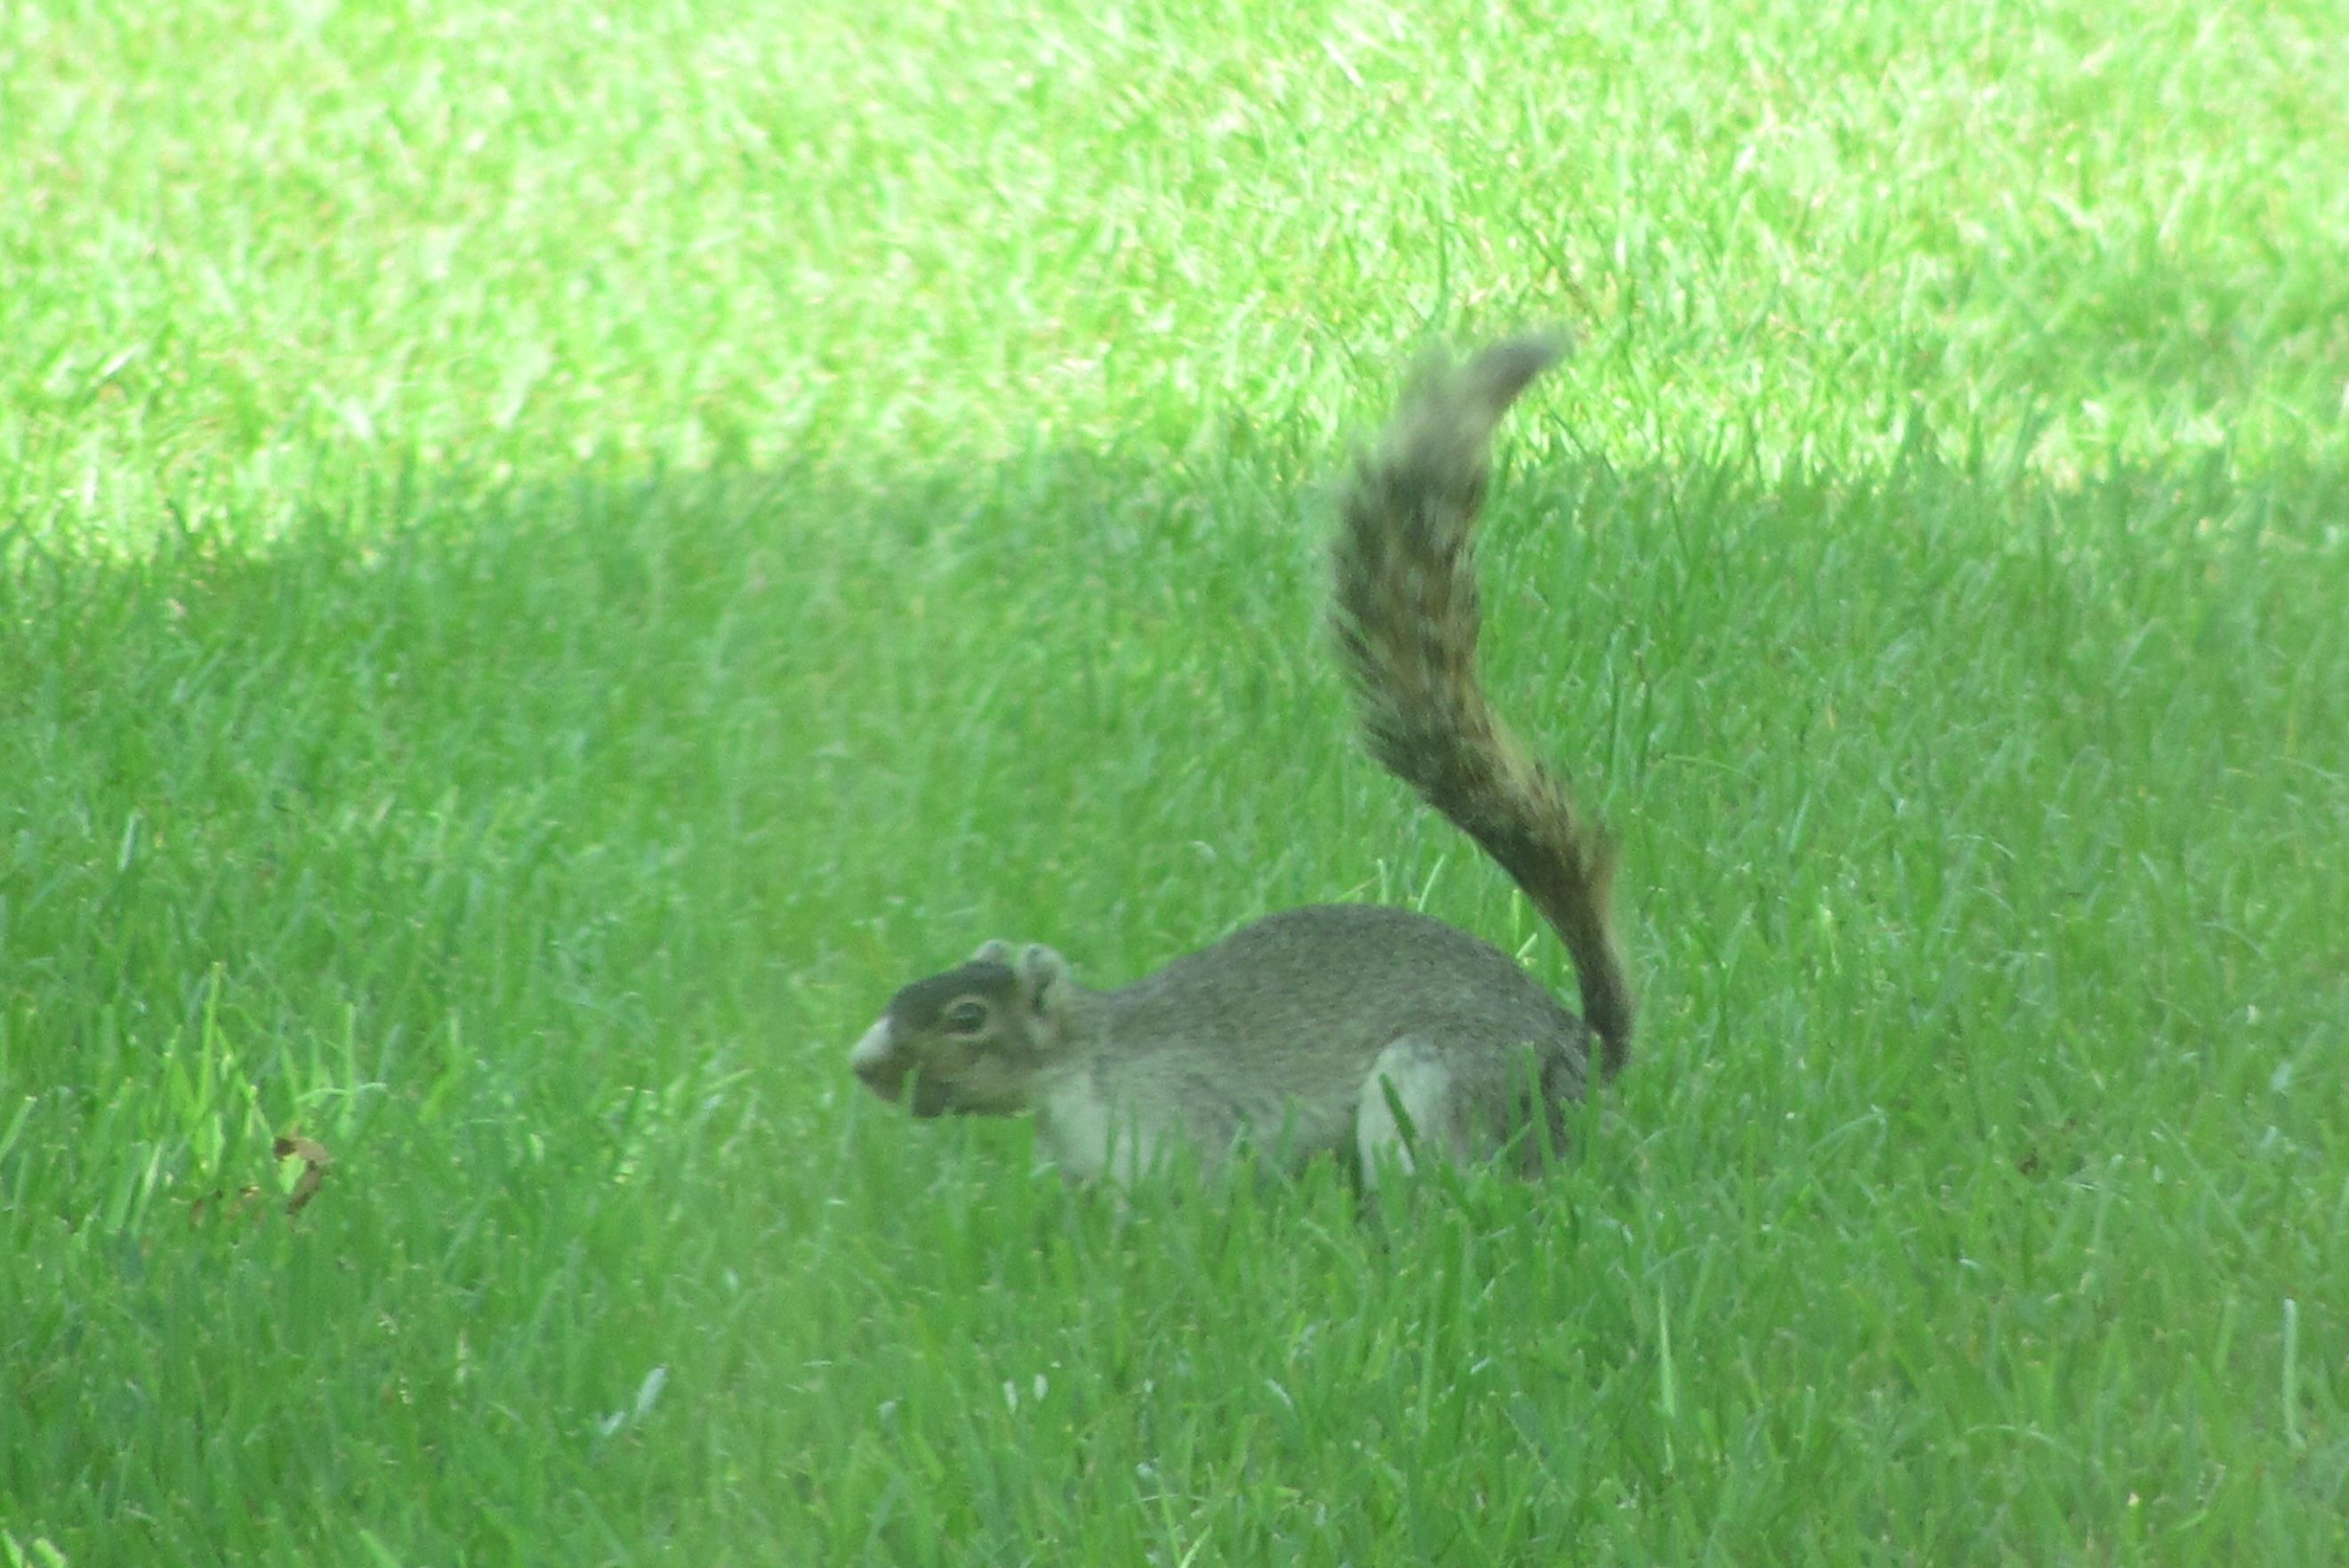 Our favorite fox squirrel that visits the hoss tools